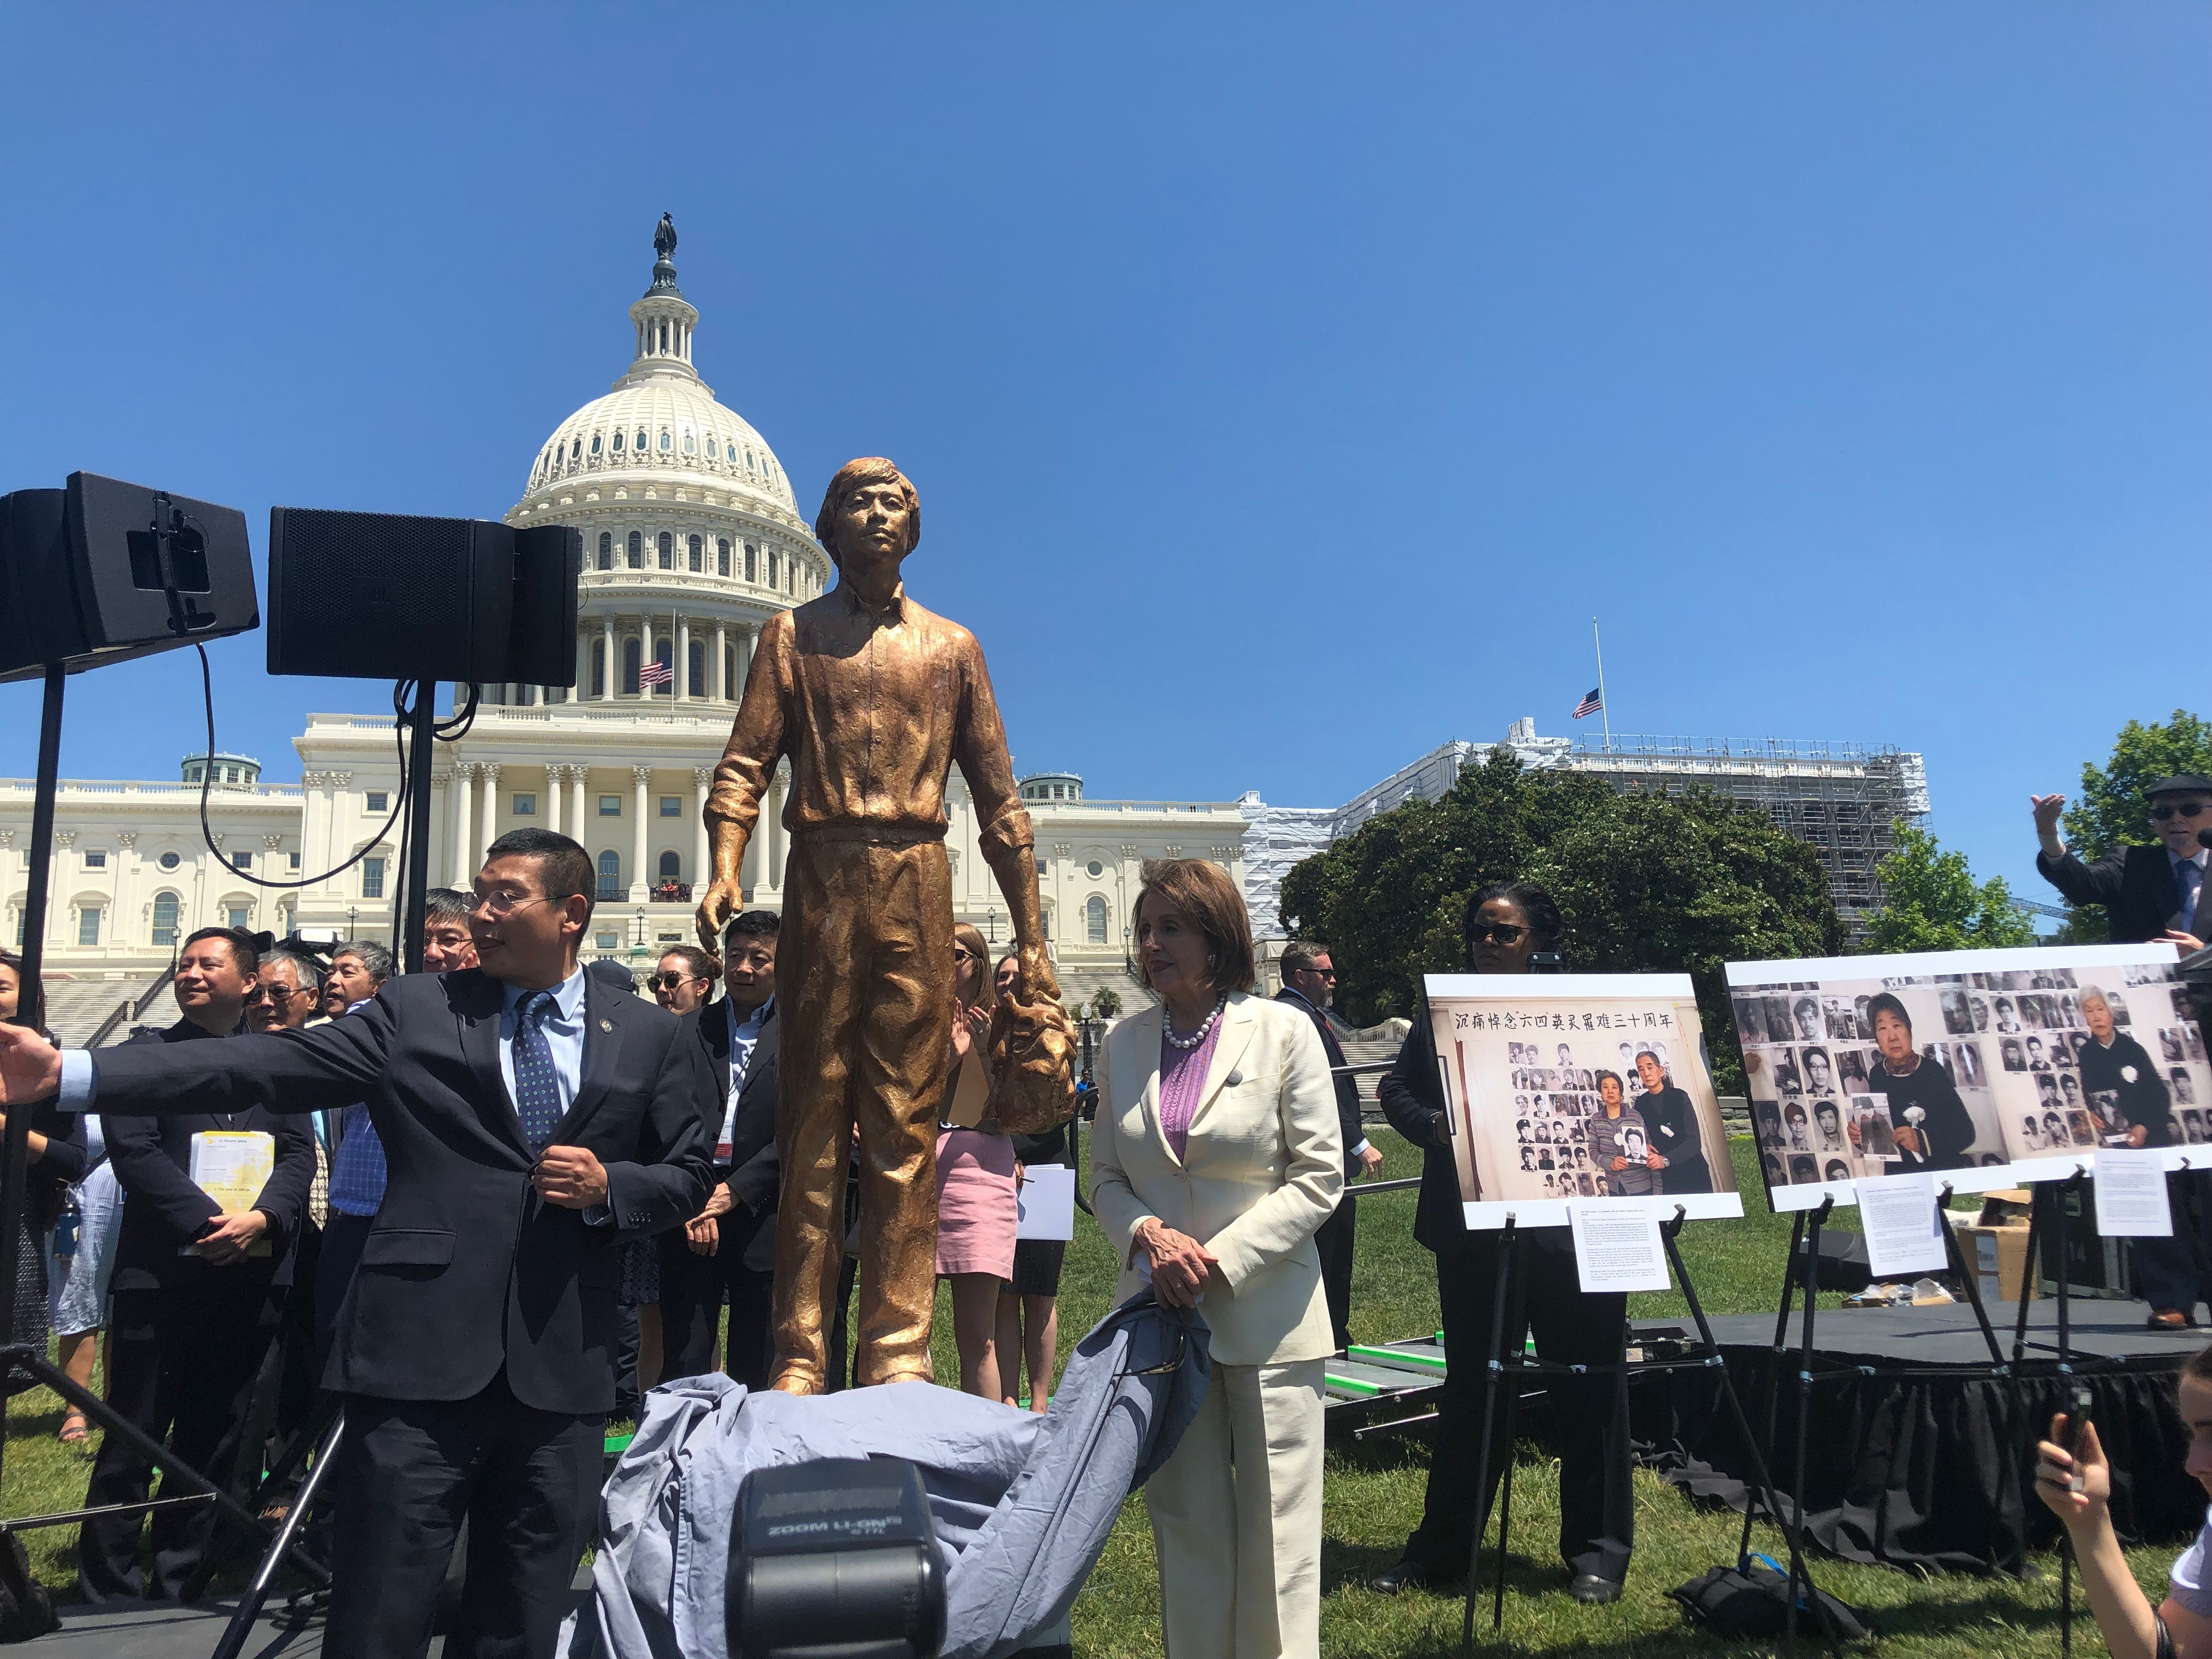 House Speaker Nancy Pelosi helped unveil a statue of the iconic Tank Man at a rally to commemorate the 30th anniversary of the Tiananmen Square Massacre held by the Victims of Communism Memorial Foundation in Washington, D.C., on June 4, 2019. Photo by Evie Fordham